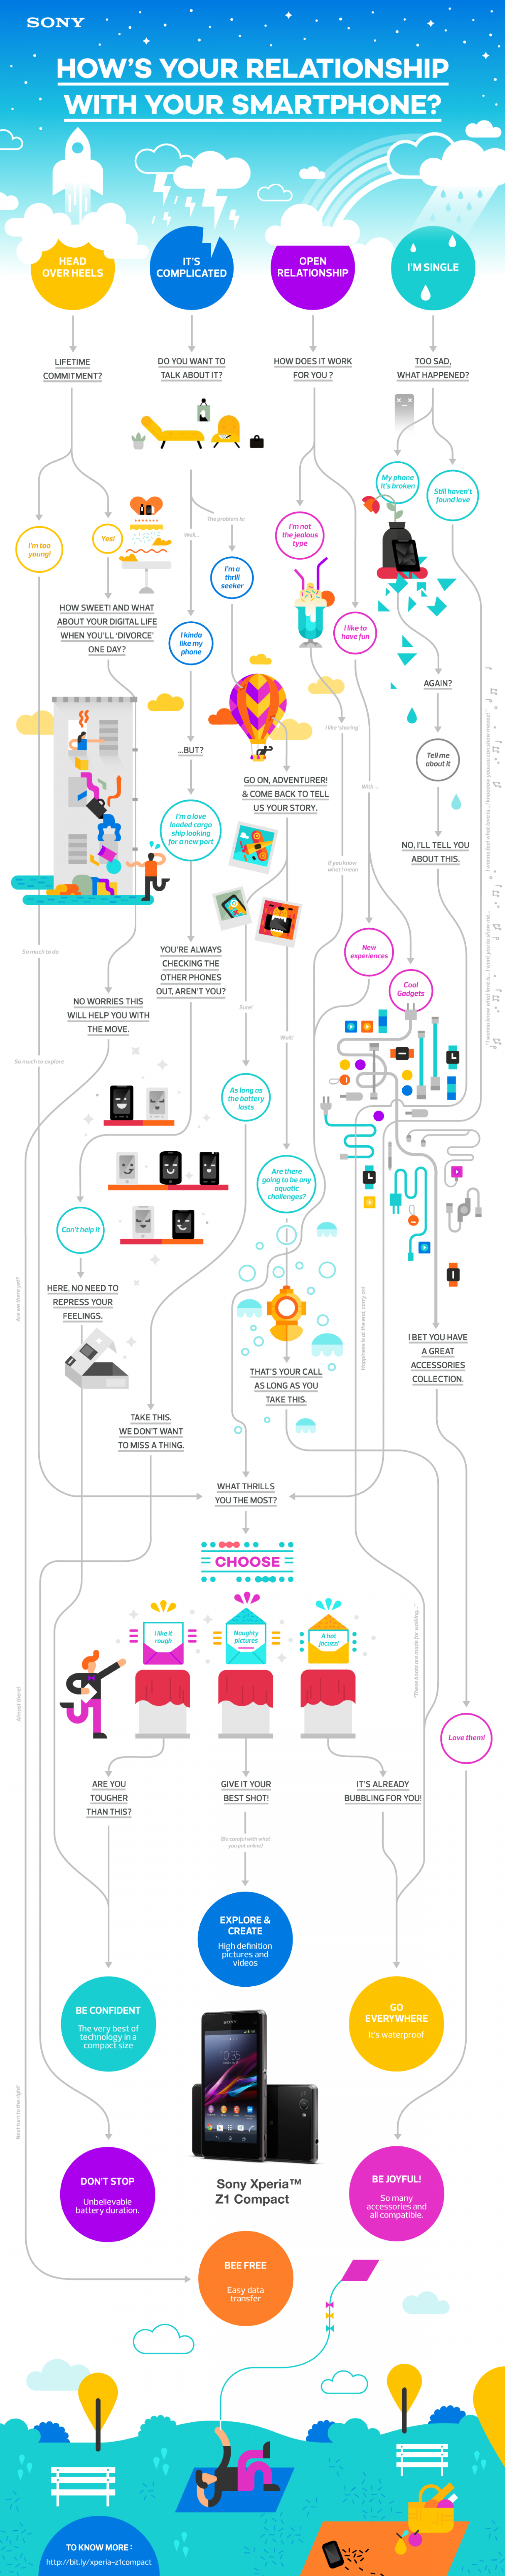 How's Your Relationship With Your Smartphone? Infographic